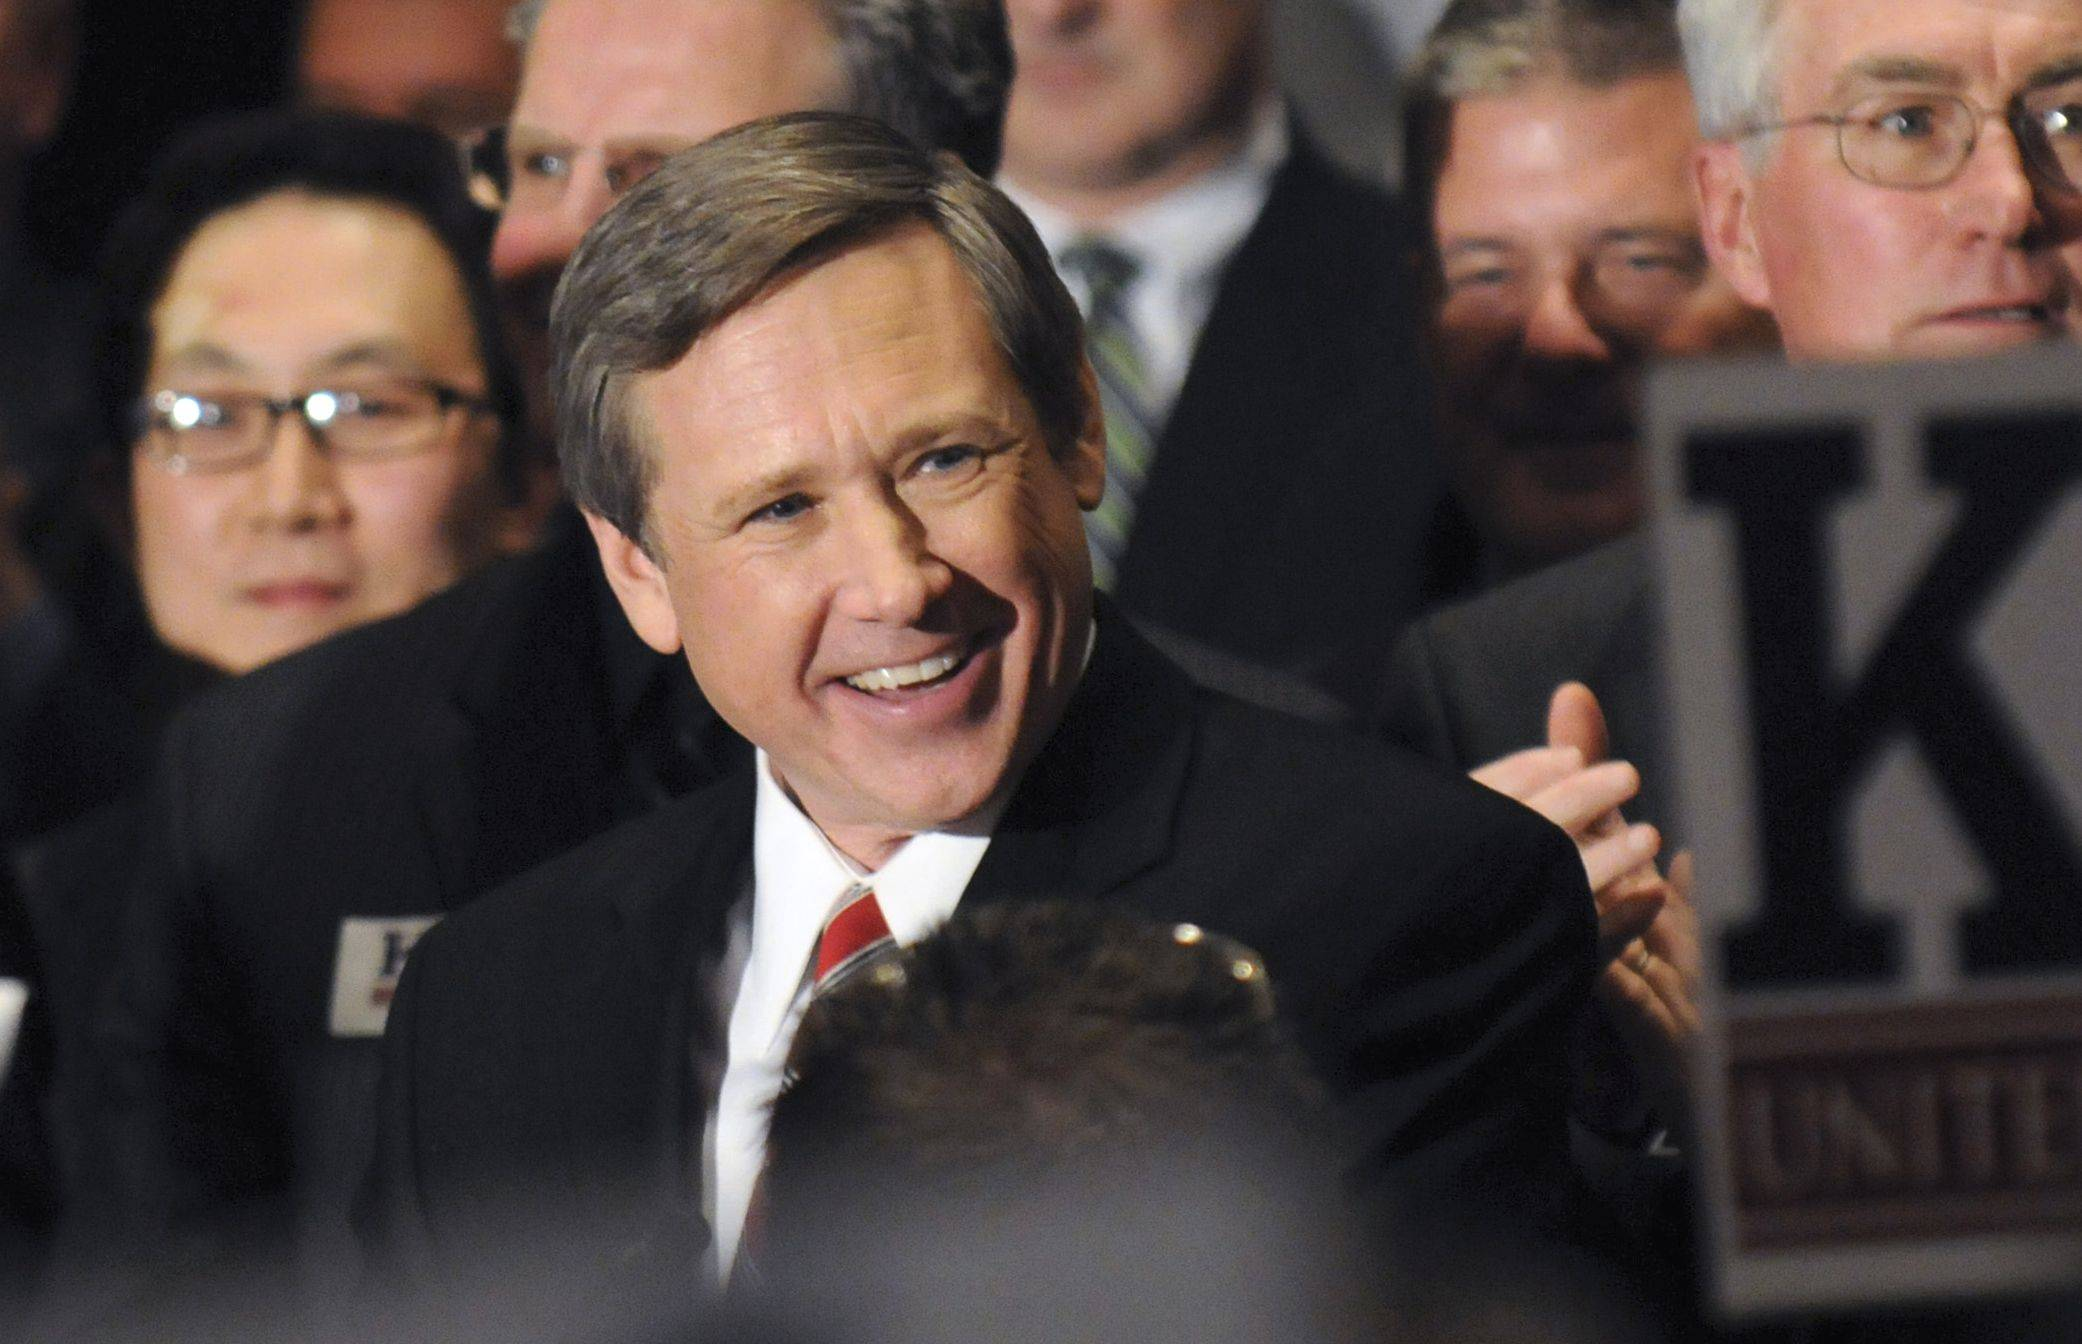 Mark Kirk greets a crowd in Wheeling as he accepts the Republican nomination to run for U.S. Senate in April 2010. Kirk, who suffered a stroke last weekend and is recovering, was elected to President Barack Obama's old Senate seat over Democrat Alexi Giannoulias.